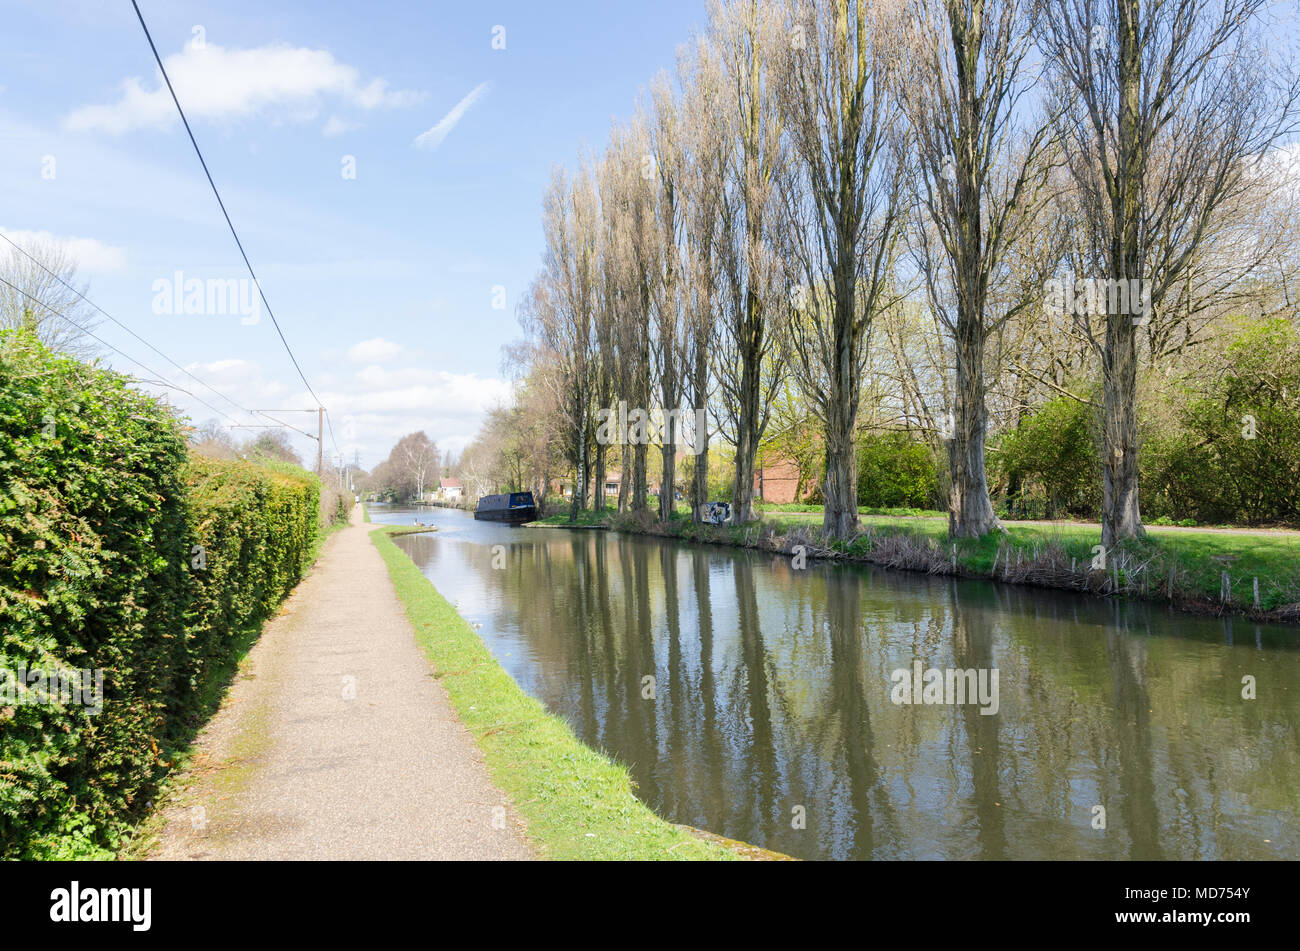 Worcester and Birmingham Canal running through Bournville on a sunny day - Stock Image